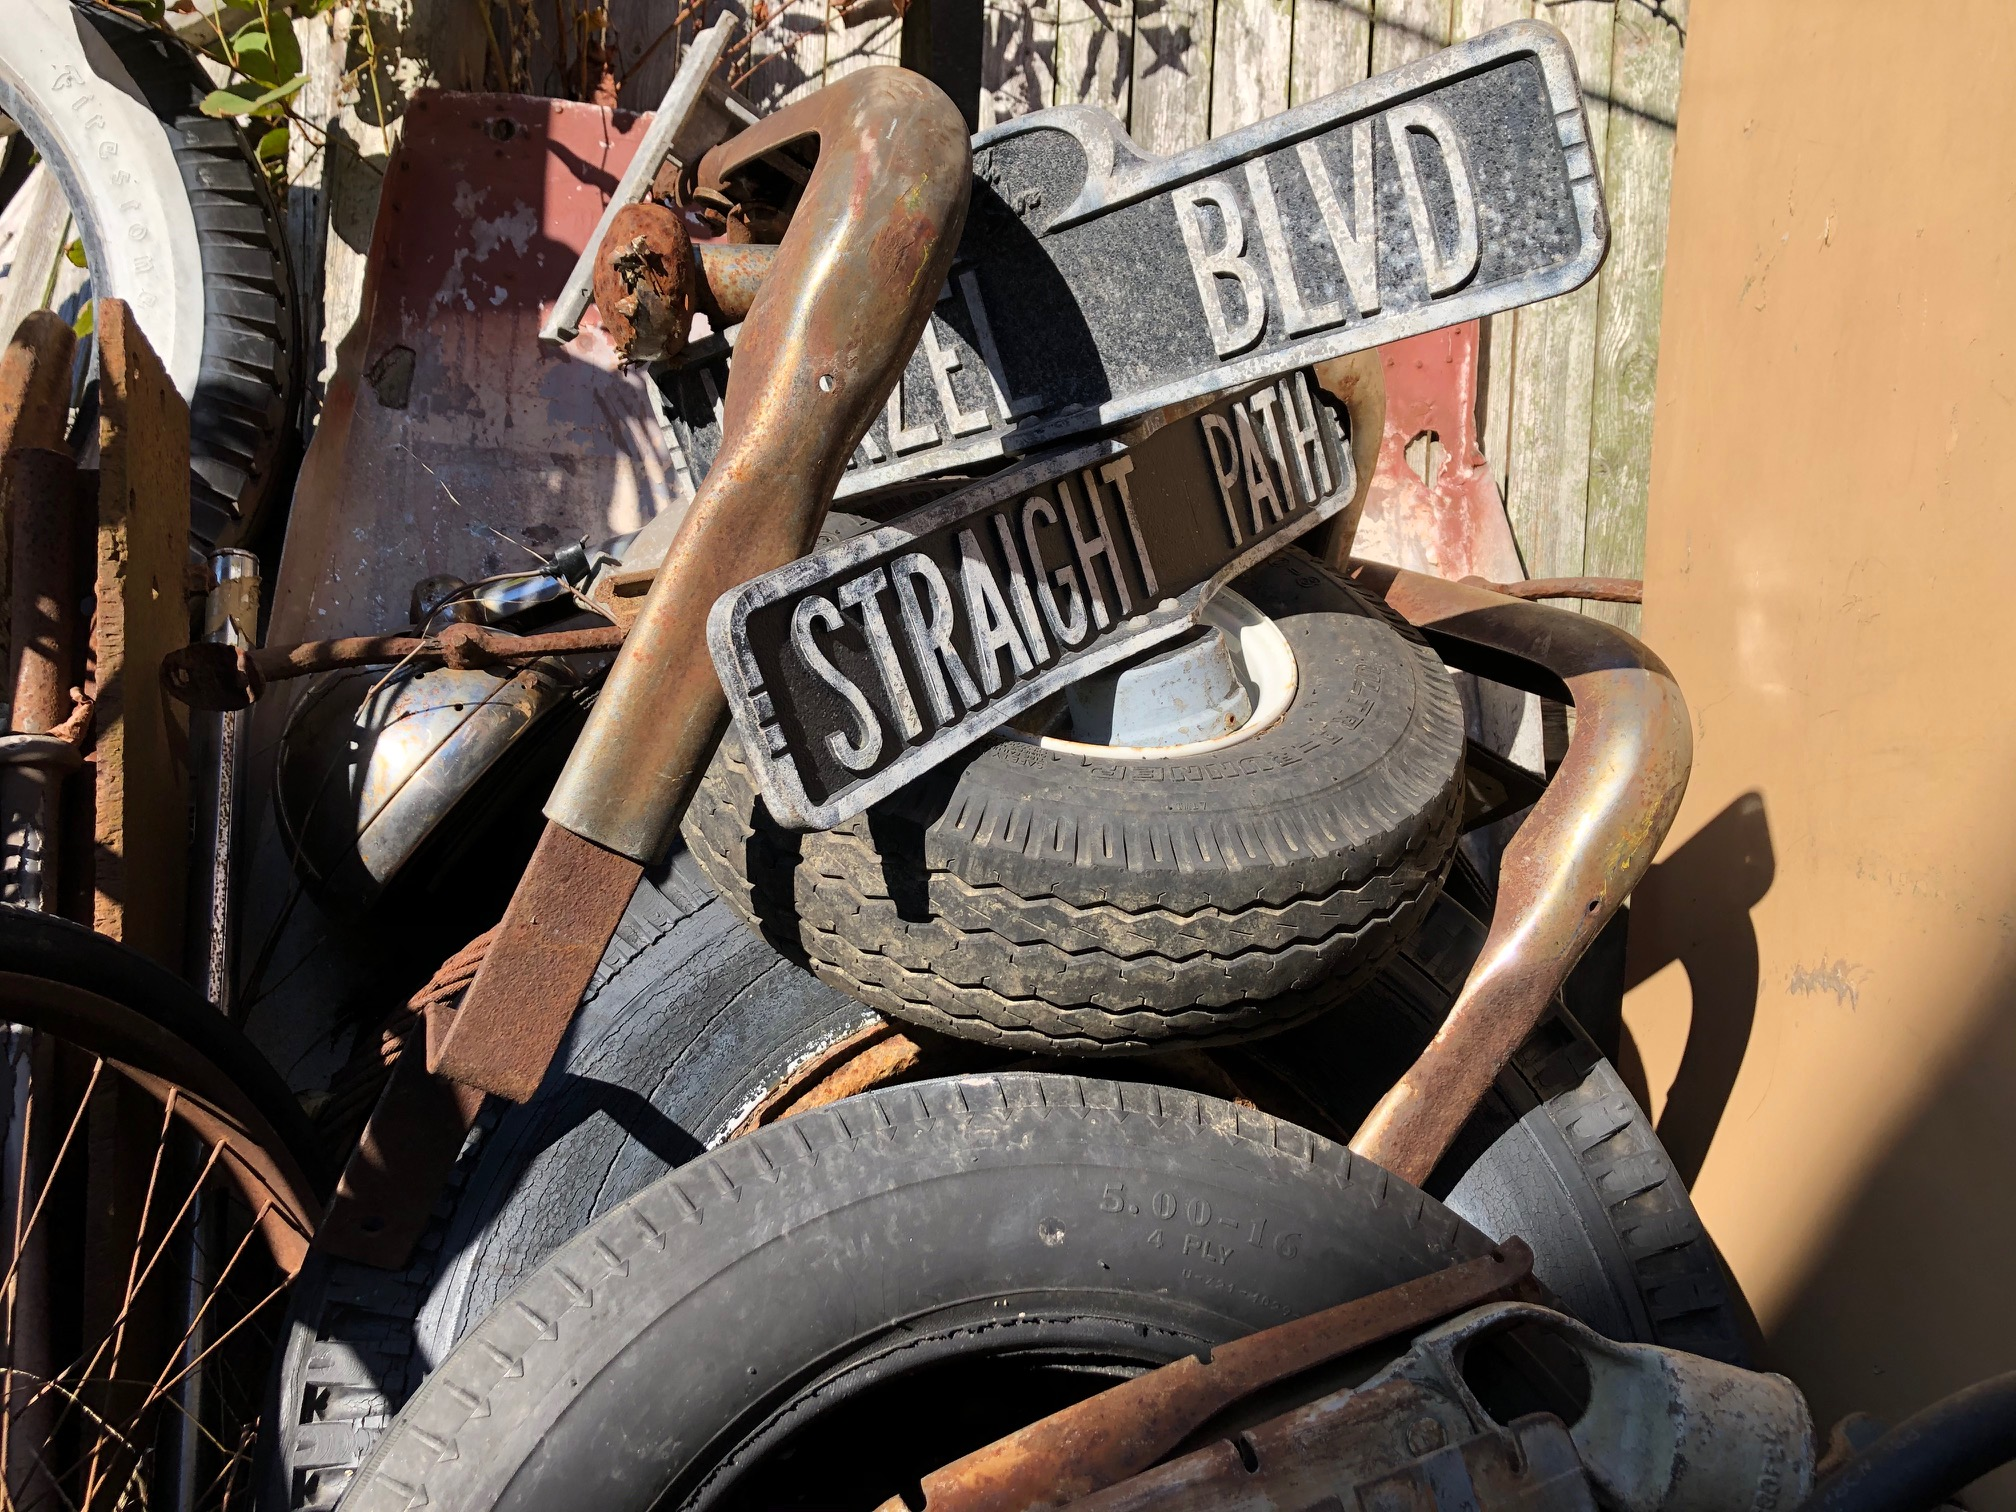 Himes Museum signs tires